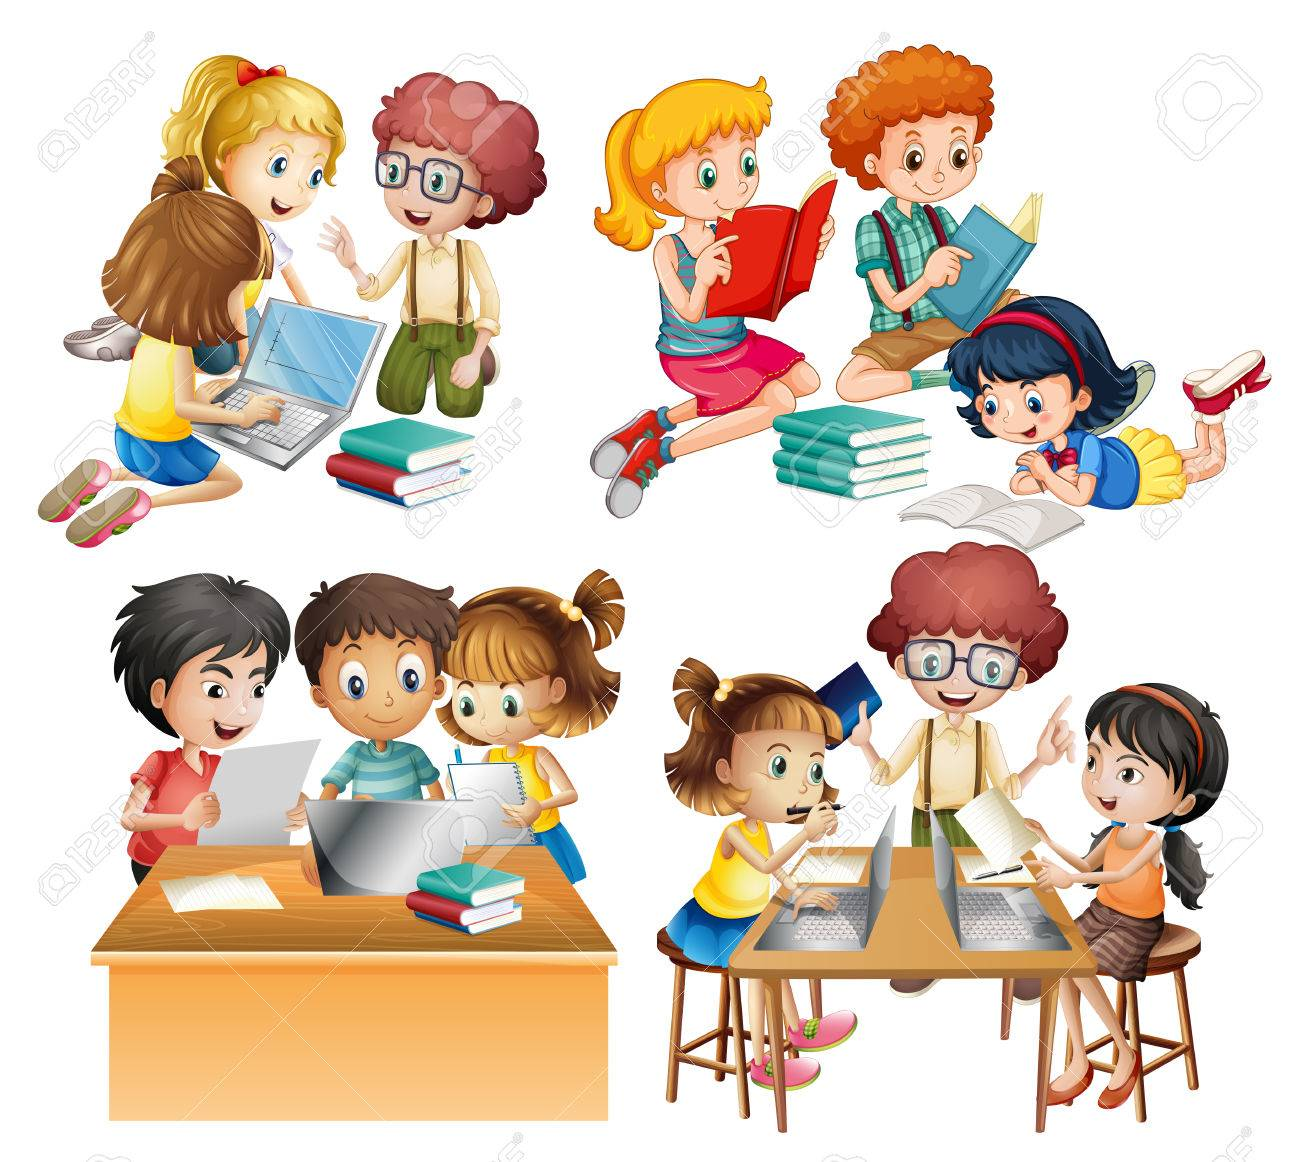 groups of students reading and working on computer illustration